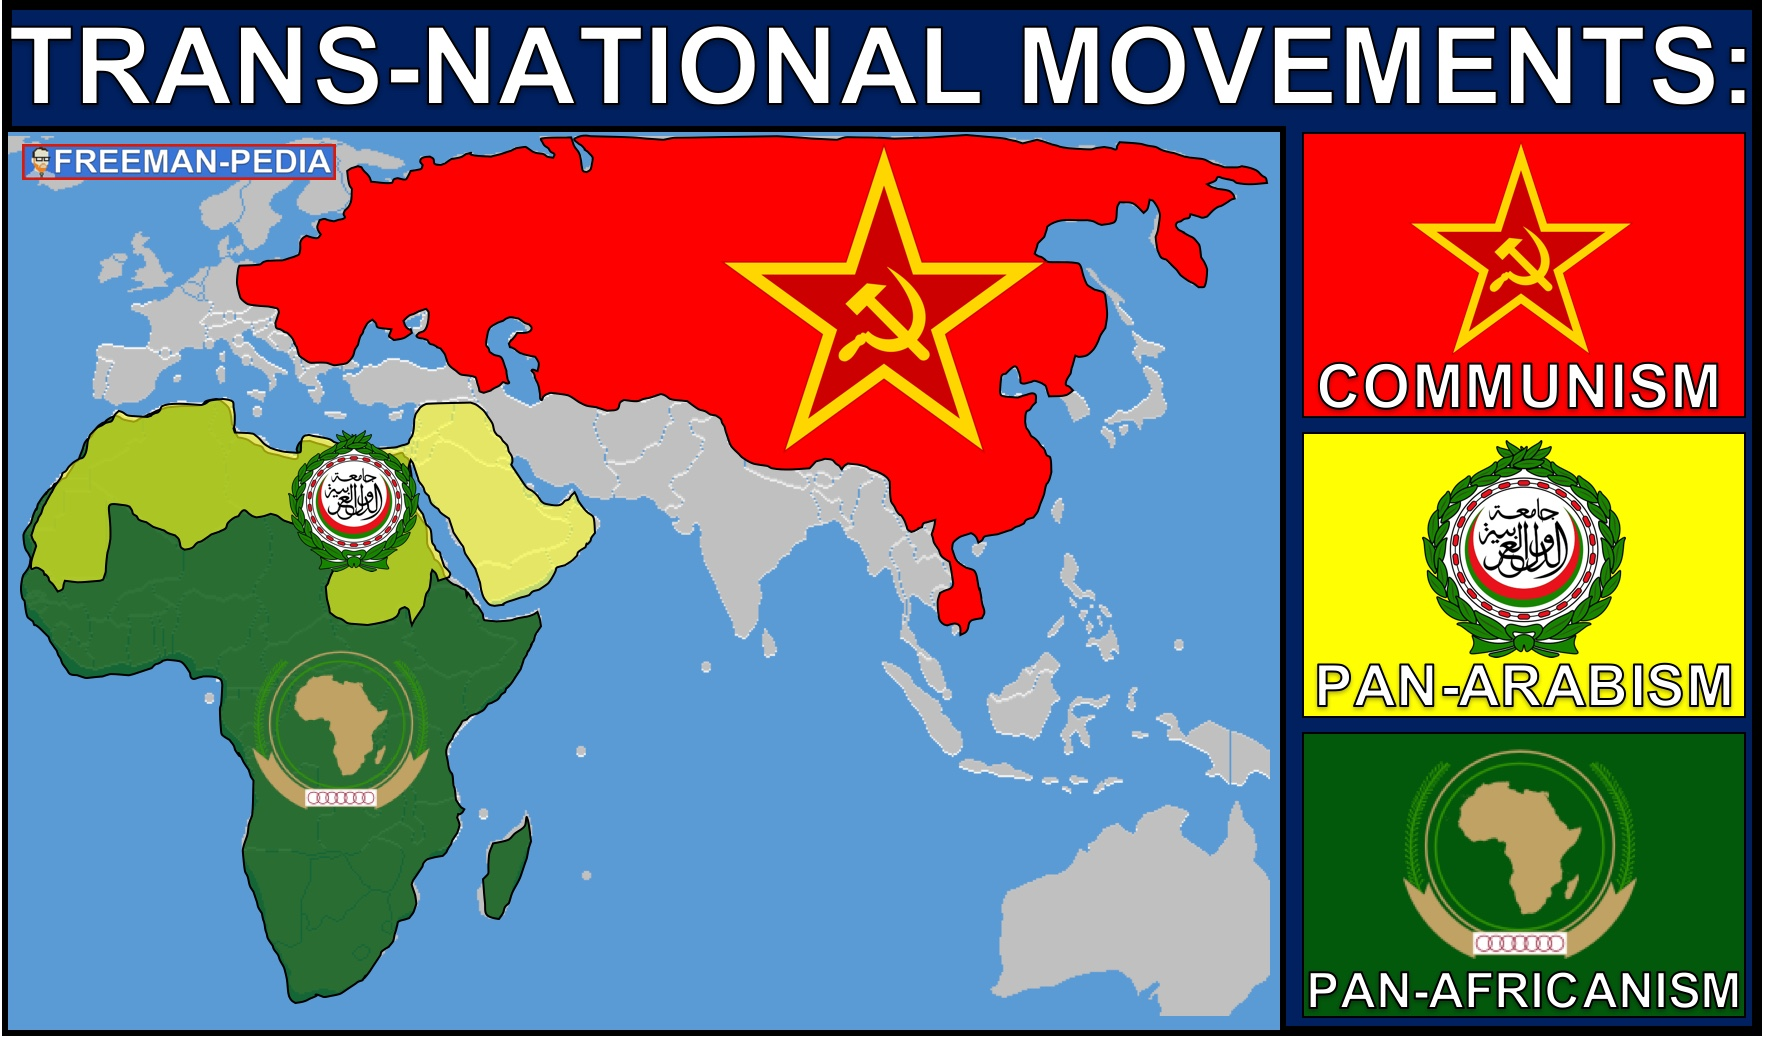 C. Transnational movements sought to unite people across national boundaries.